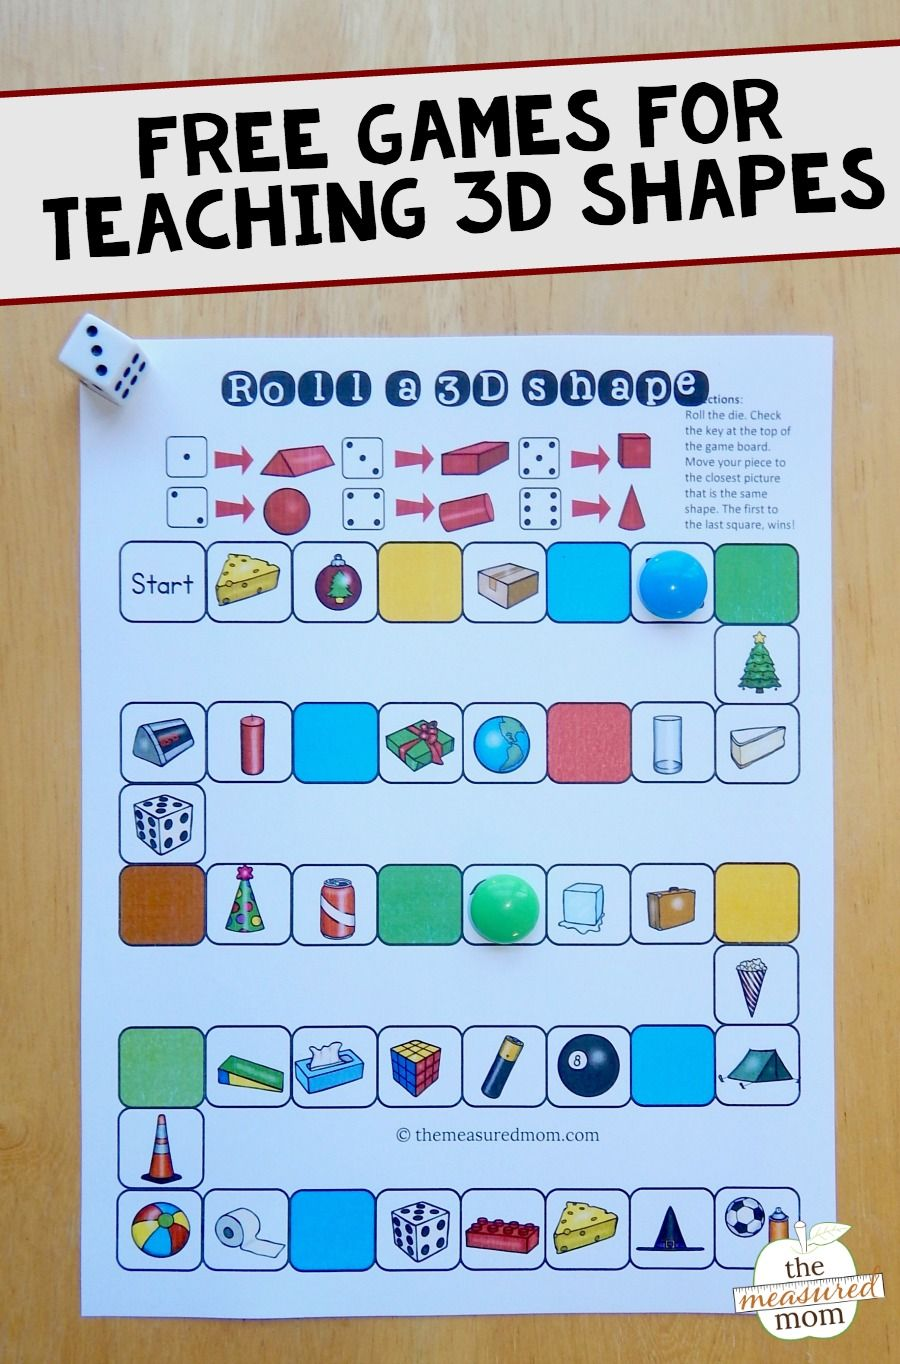 hight resolution of 3D shape games - The Measured Mom   Teaching shapes